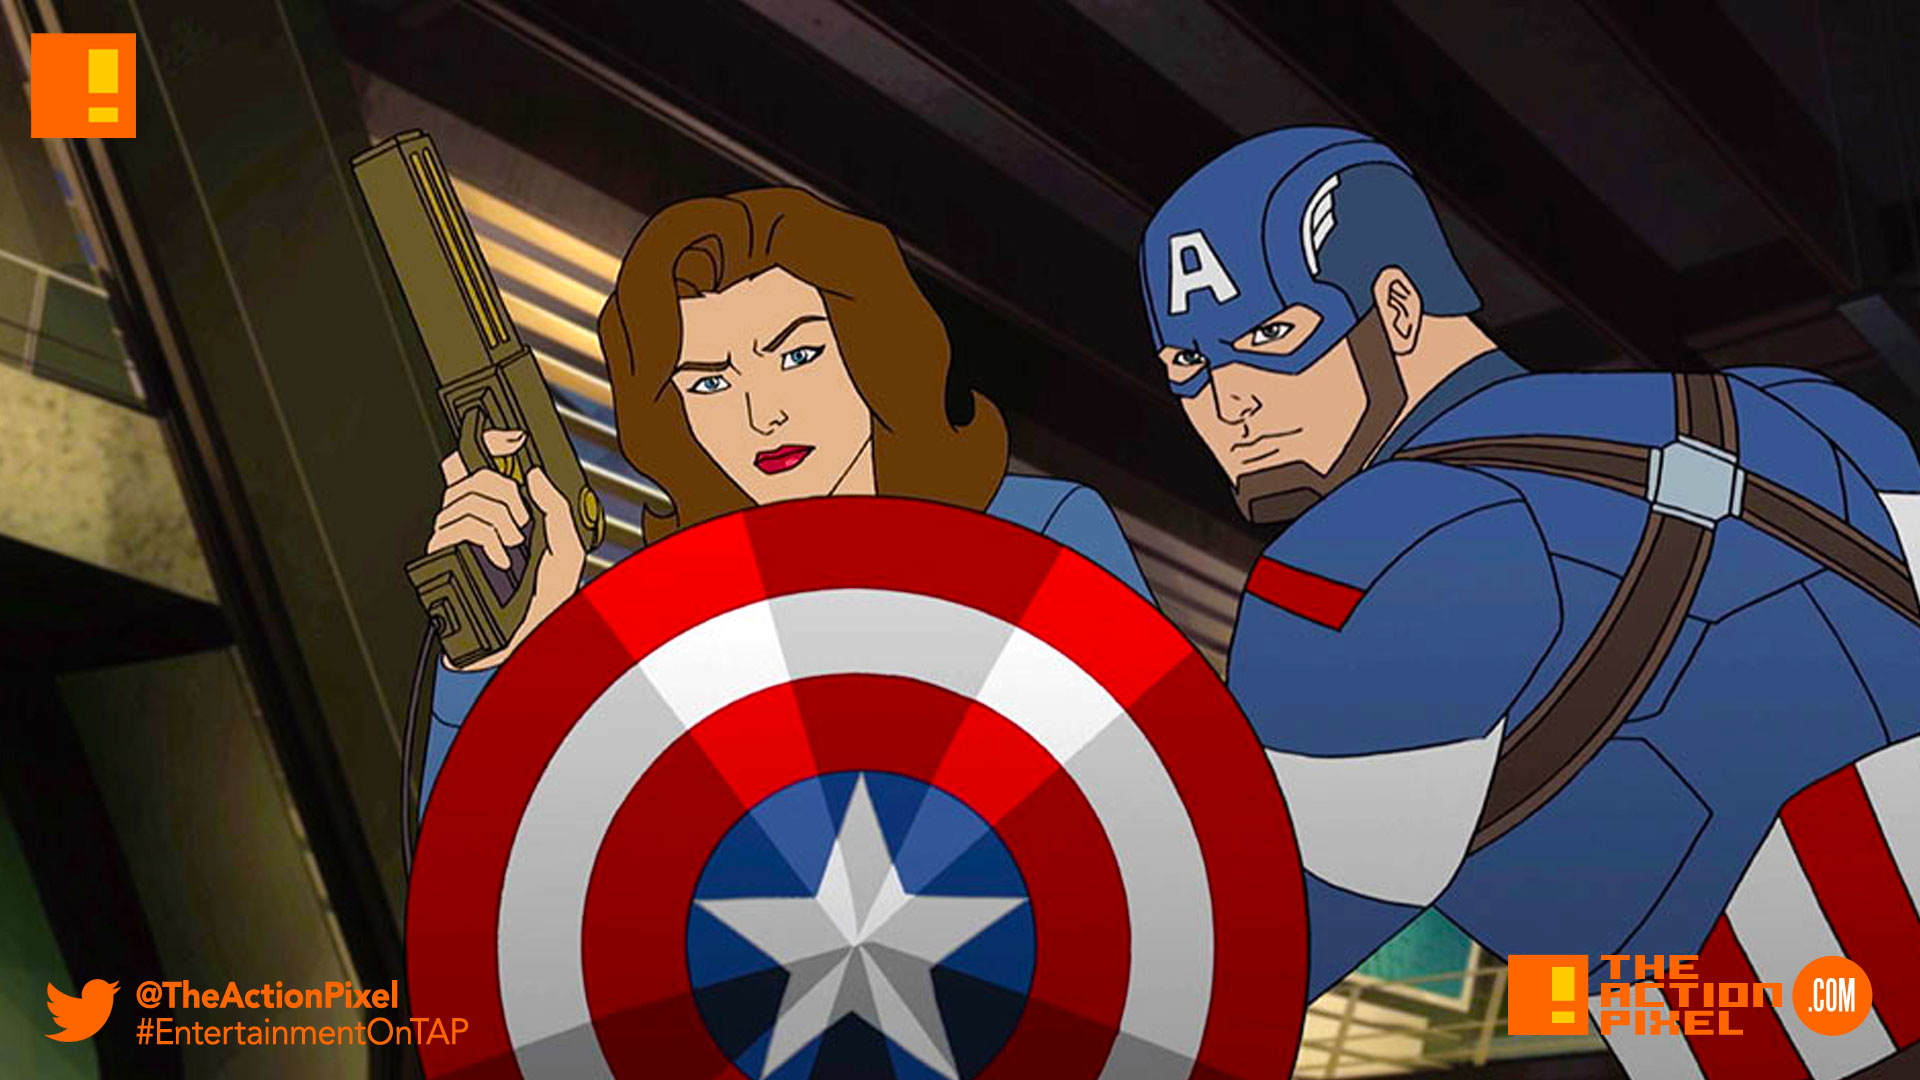 captain america, hayley atwell,peggy carter, secret wars, marvel, secret wars, marvel's avengers: secret wars, avengers: secret wars, avengers secret wars, captain america, disney xd, disney,